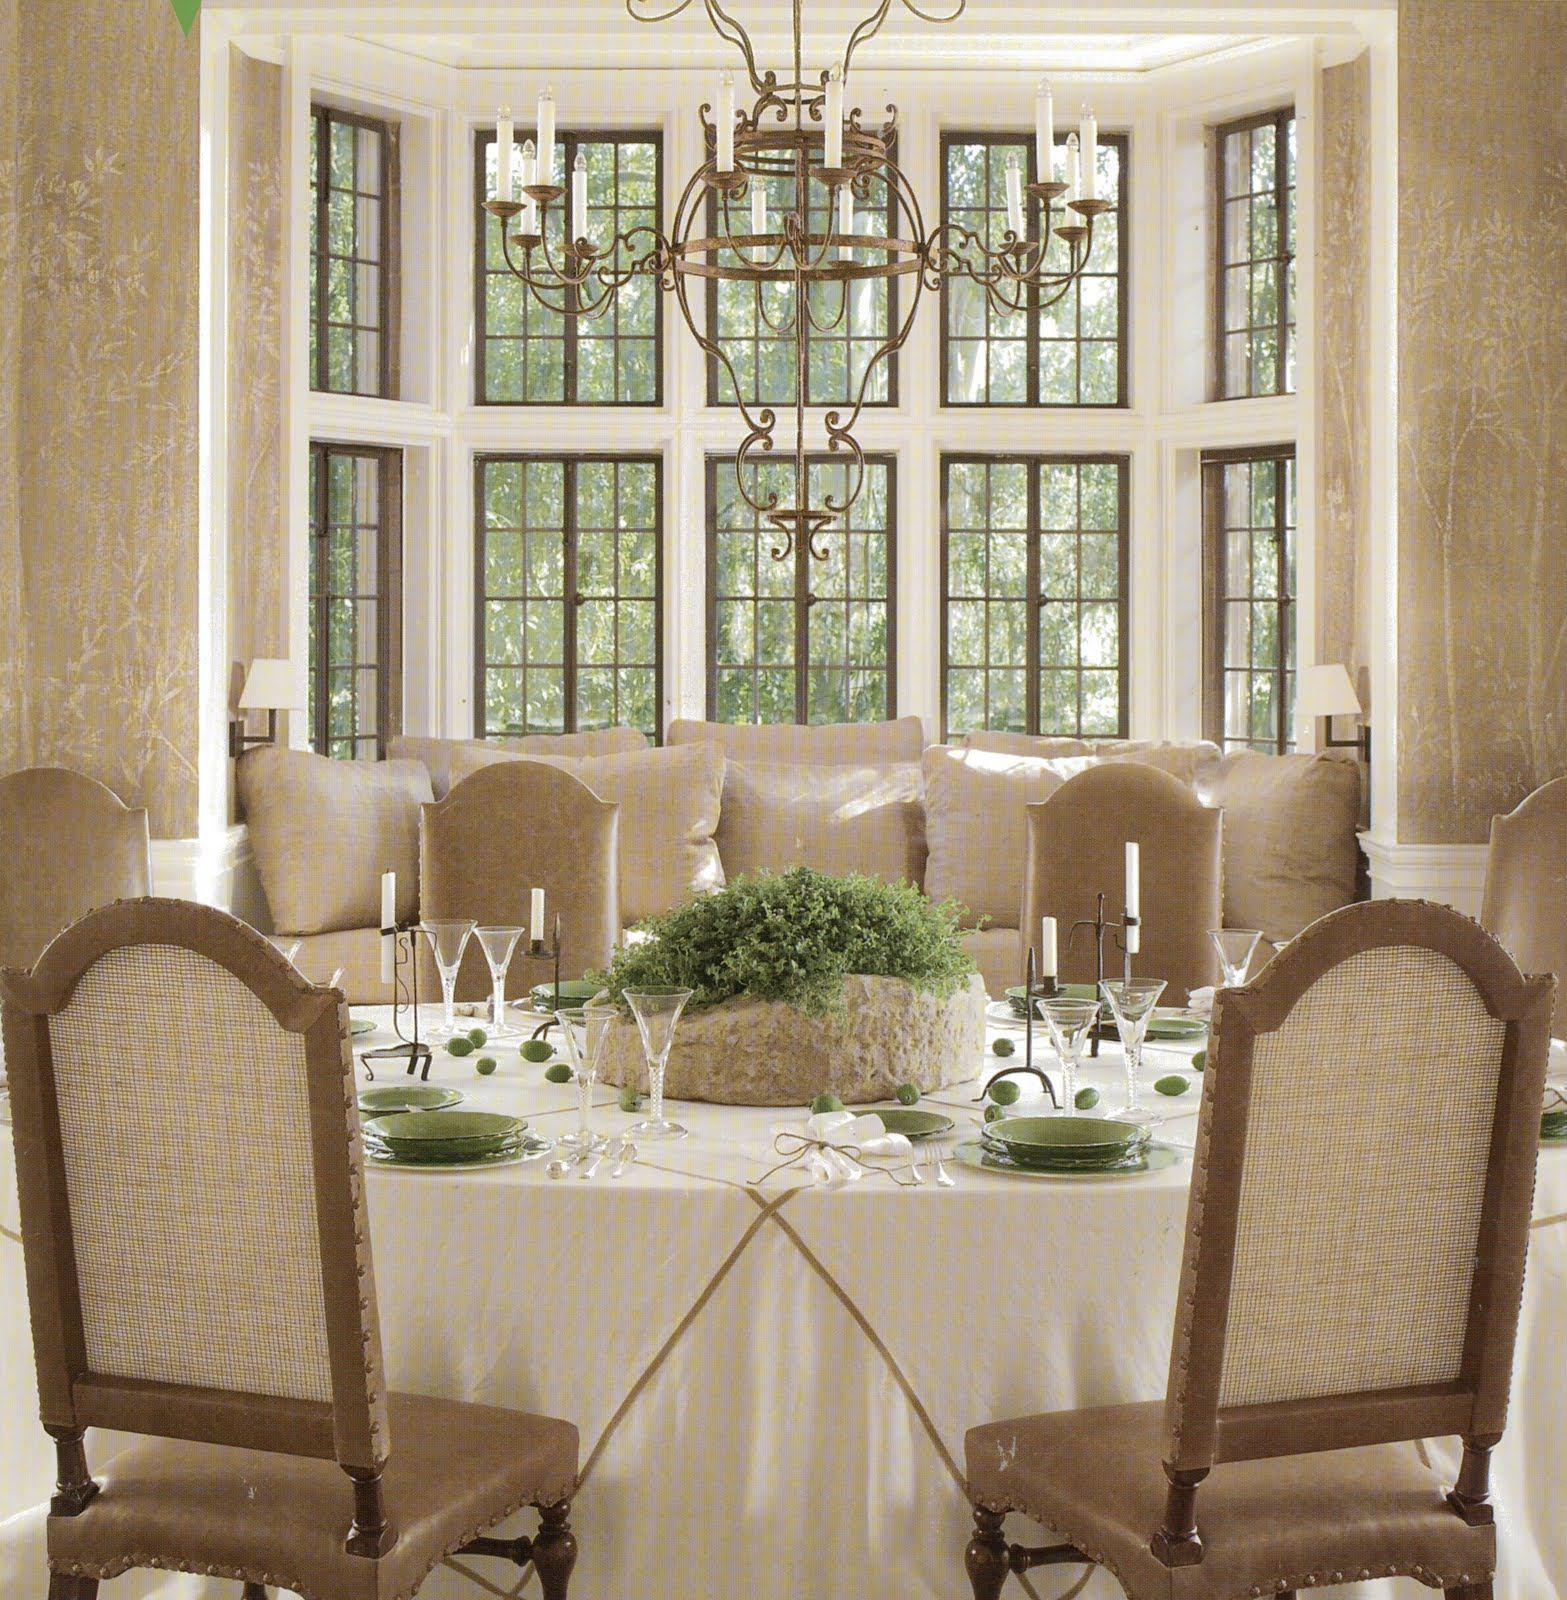 P s i love this ideas for dining room for Dining room seating ideas